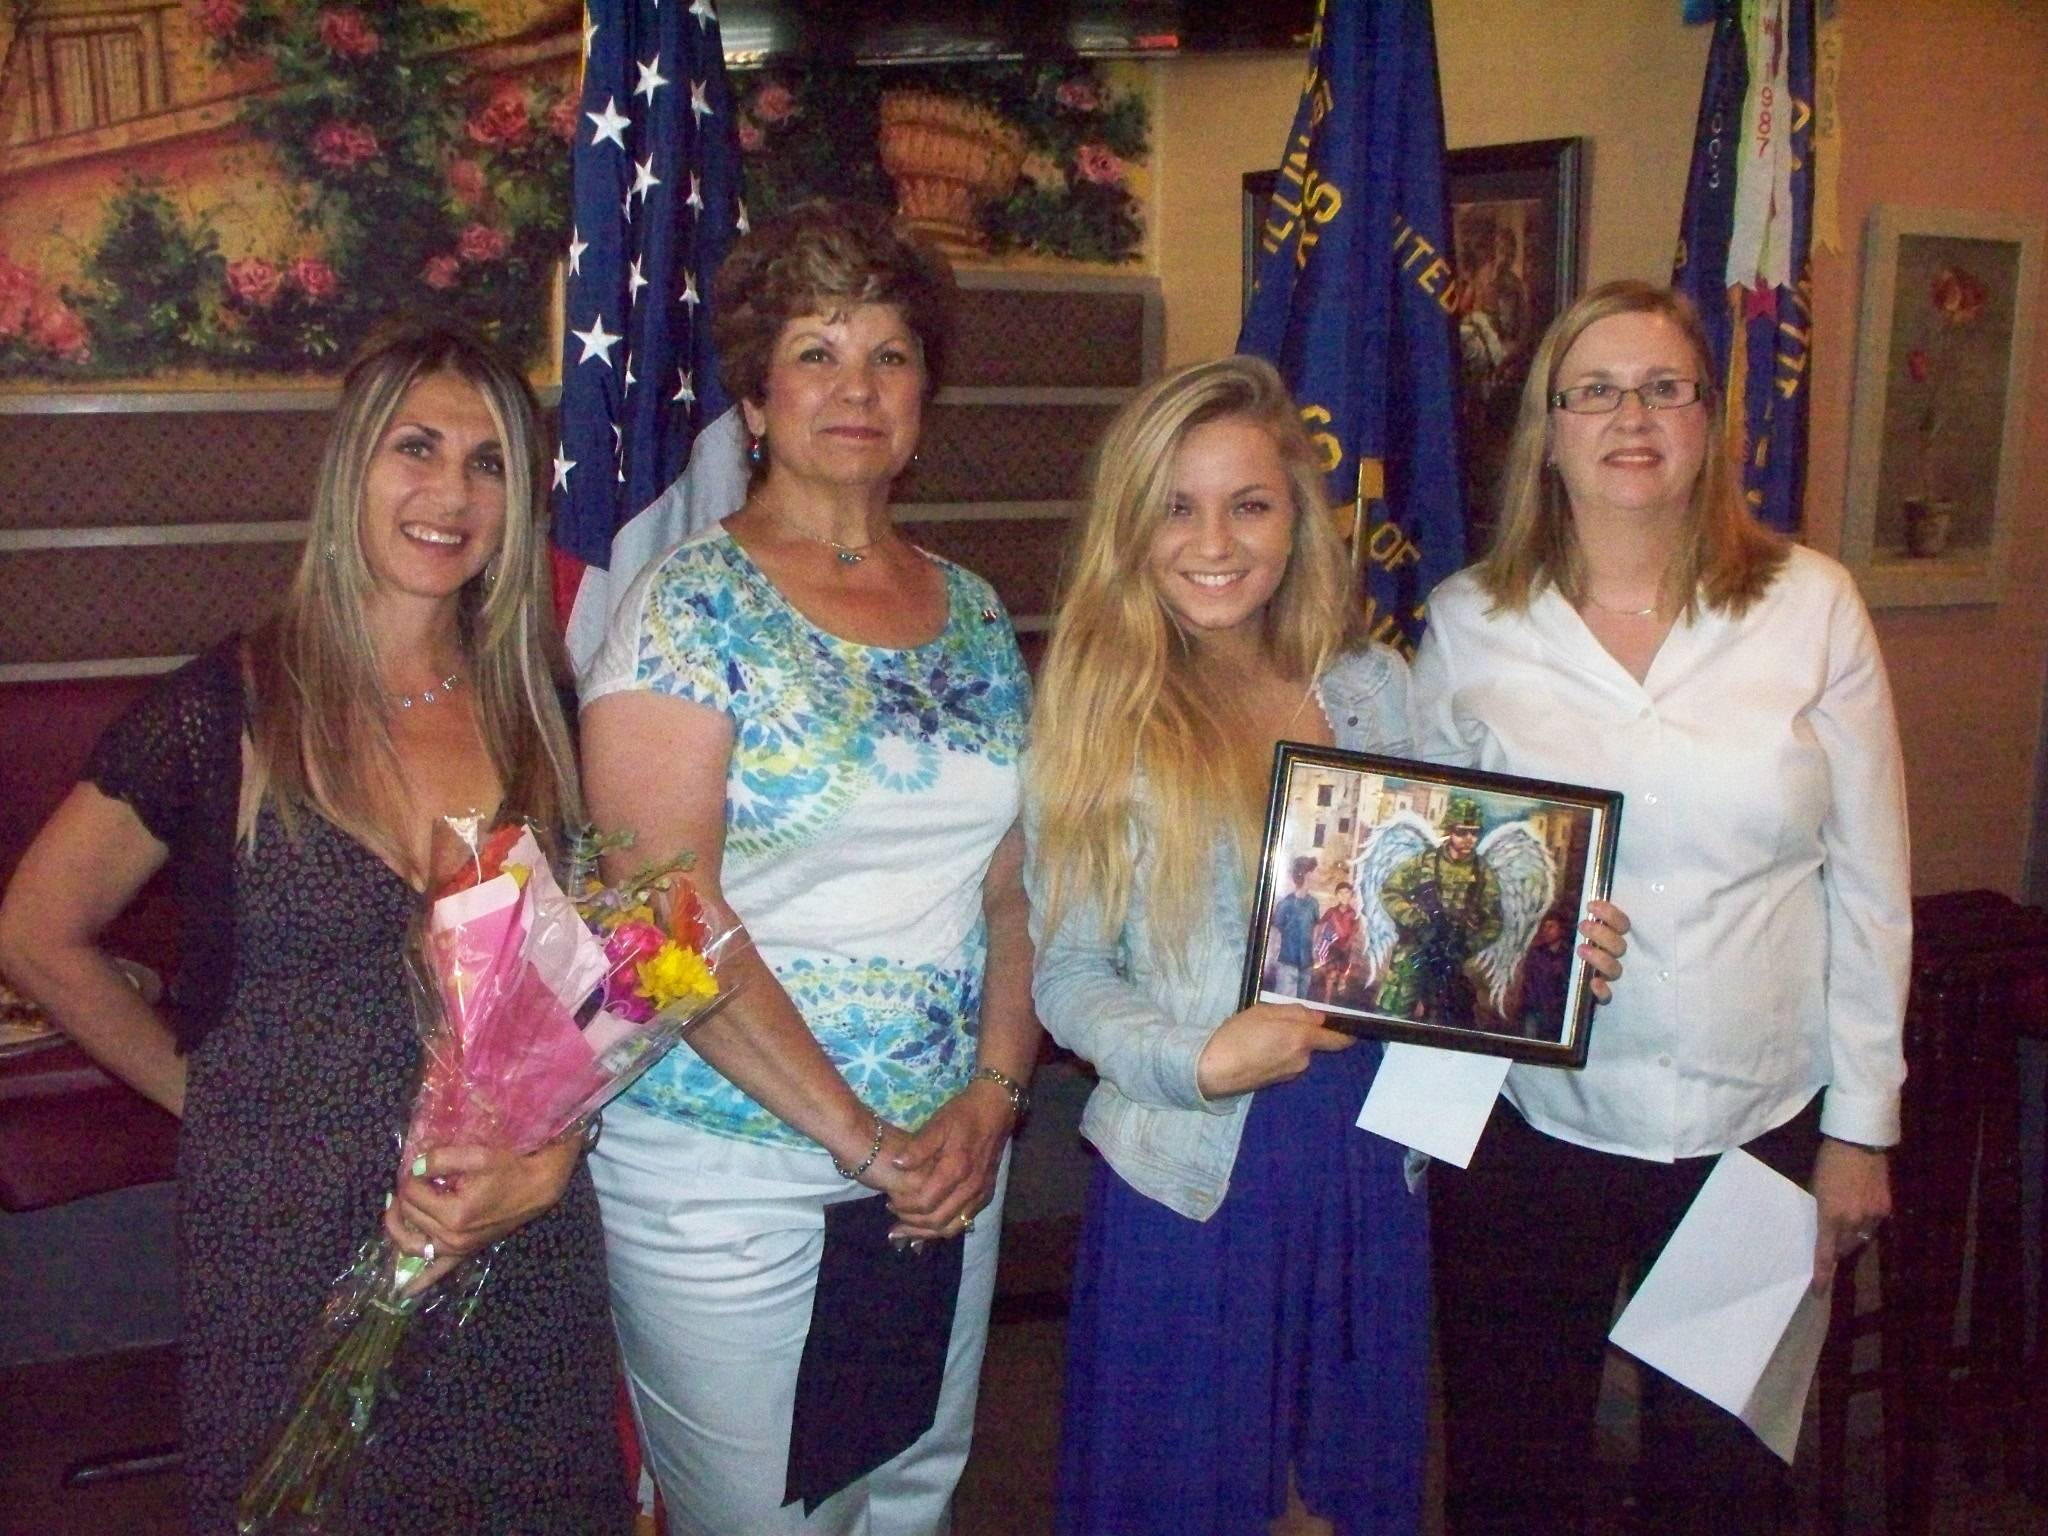 From left to right: Gina Freehill (Klaudia's mentor), Rochelle Prybylski (Friend who suggeted she enter the contest), Klaudia Sekura (winner), Charlene Wein ( Chairman, Patriotic Art Contest for 2202)